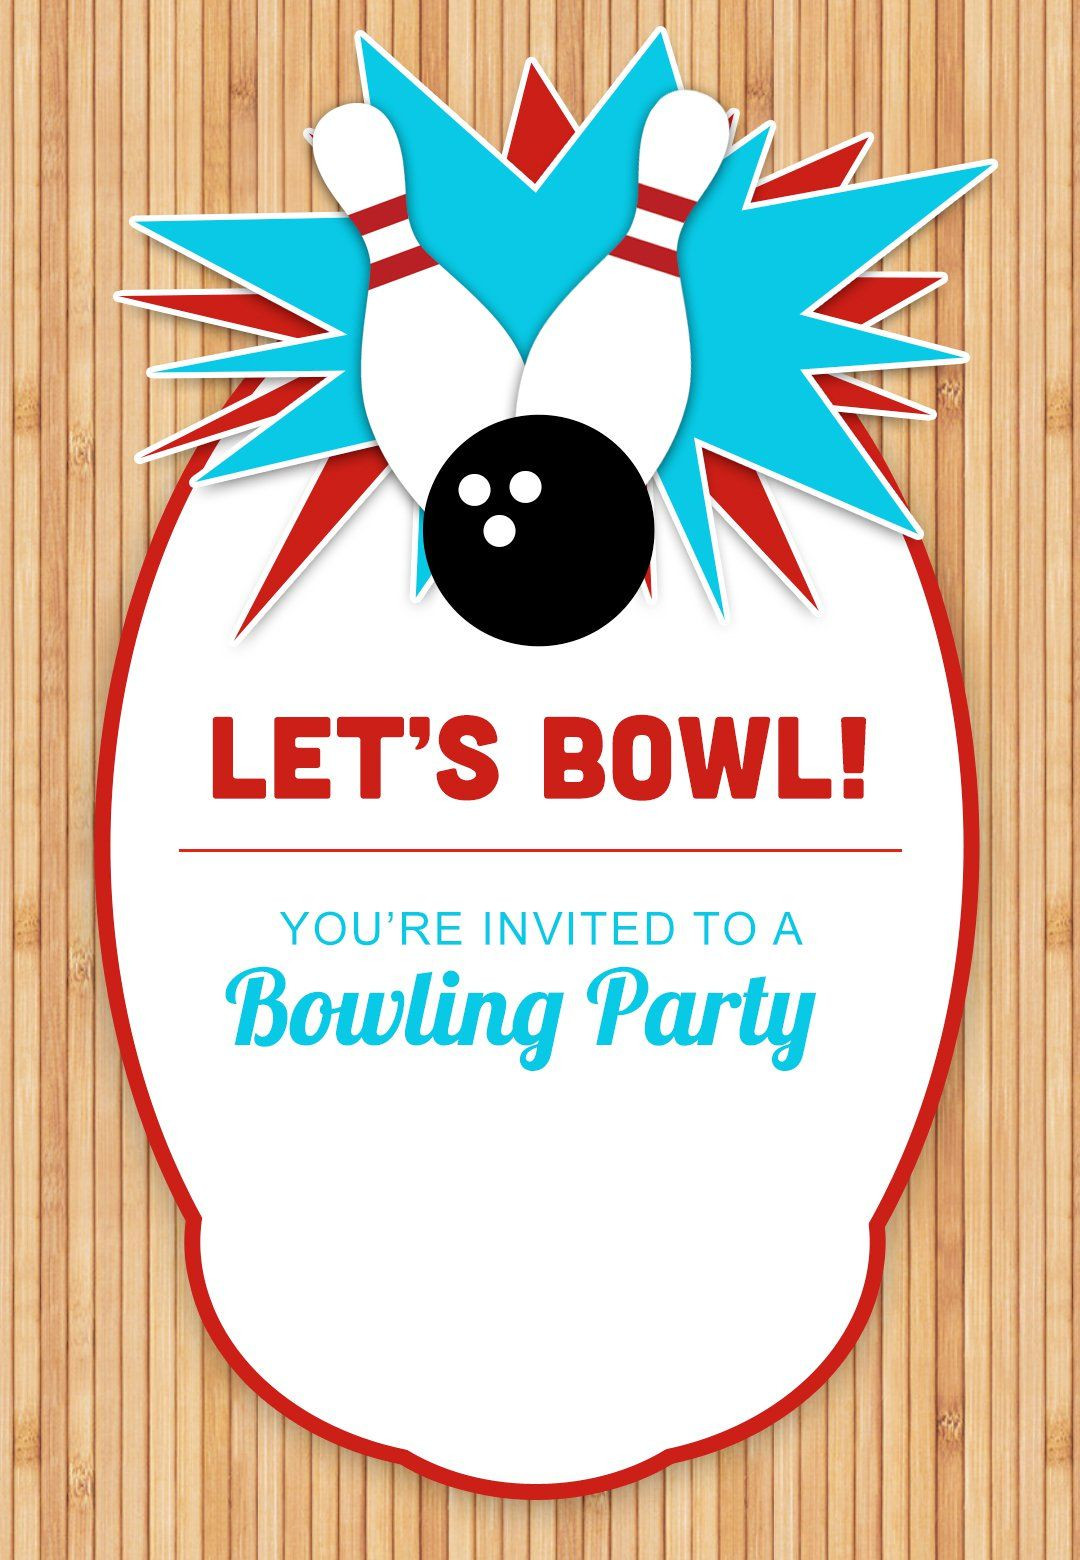 Bowling Party - Free Birthday Invitation Template | Greetings Island ...